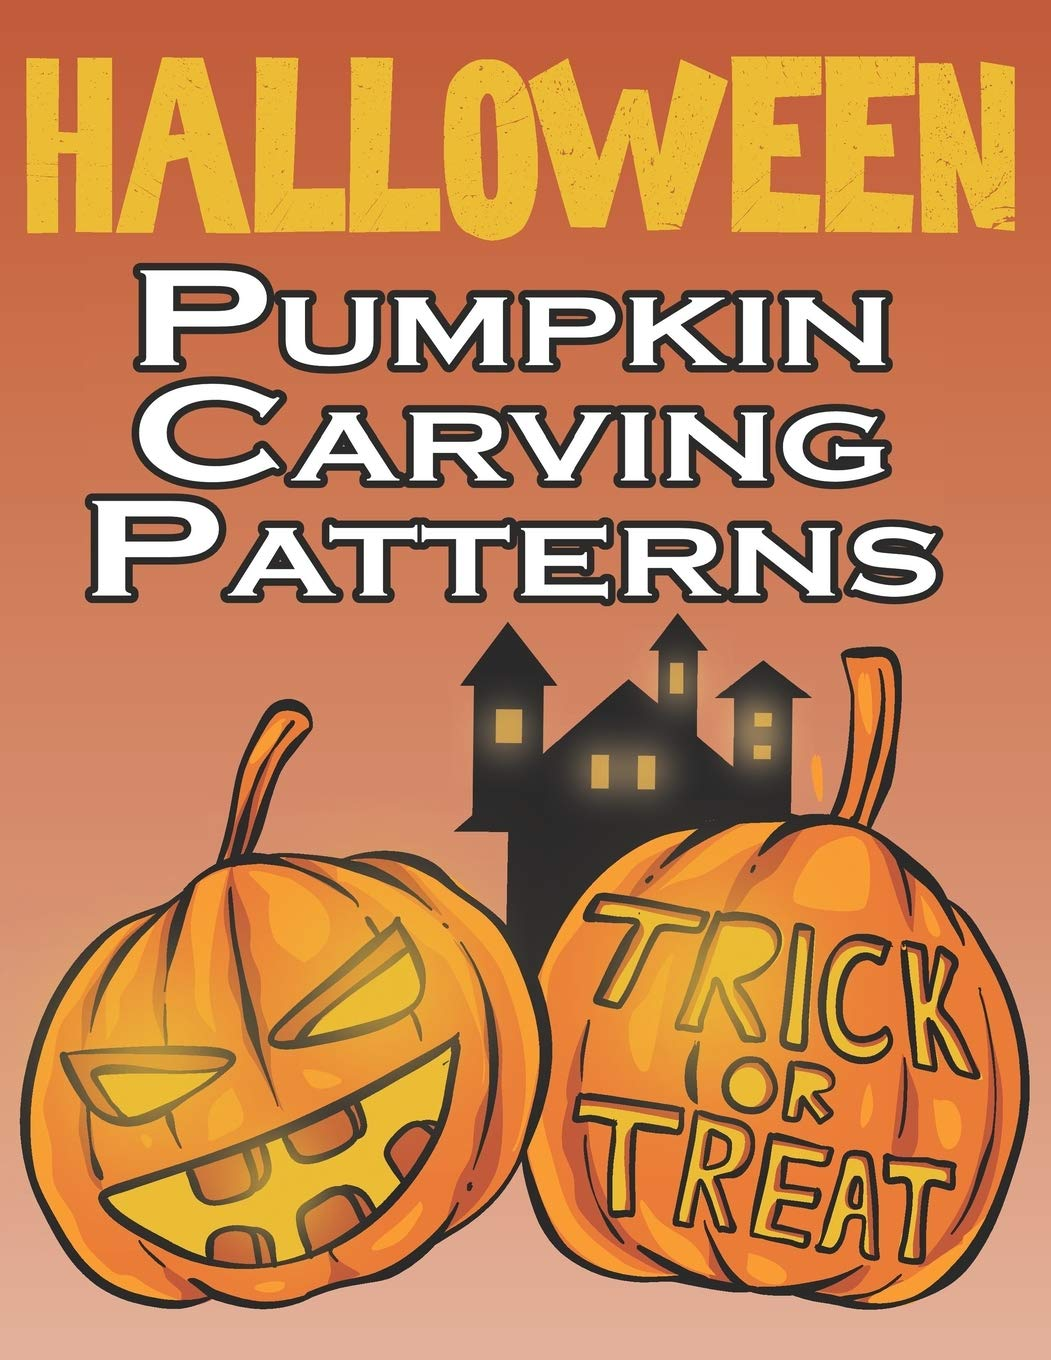 Halloween Pumpkin Carving Patterns 50 Templates For Carving Funny And Spooky Faces Halloween Designs Stencils Loya Desing Pumpkin 9798690412654 Amazon Com Books